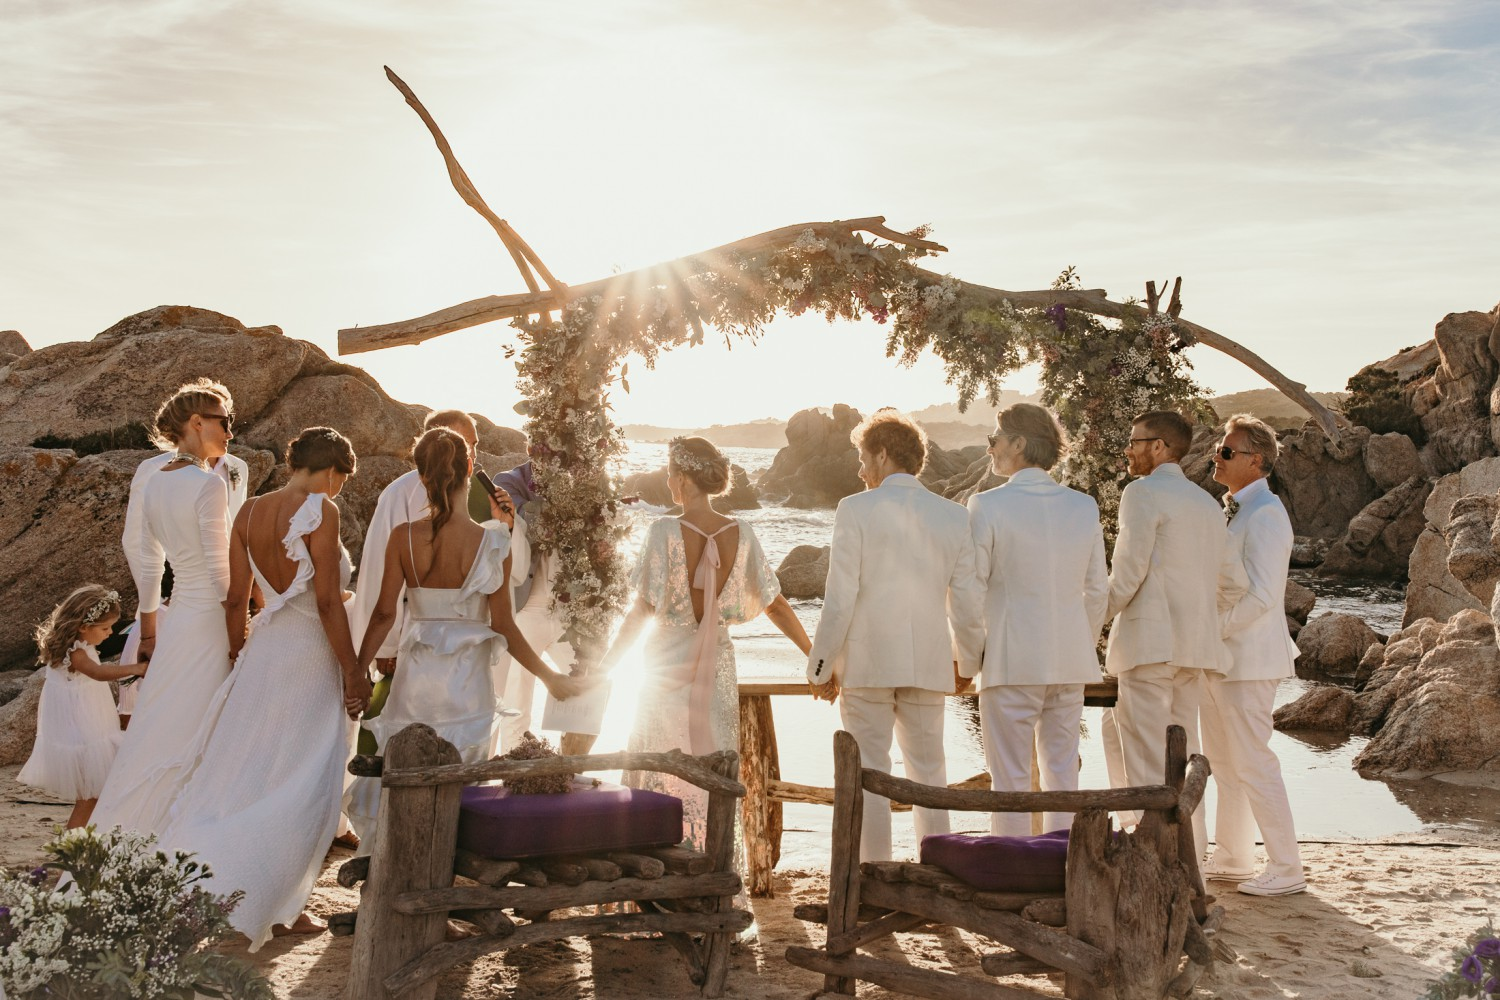 Littleton-Rose-Destination-Wedding-Planner-Corsica-Justine-and-Tom-Beach-Ceremony-France.jpg